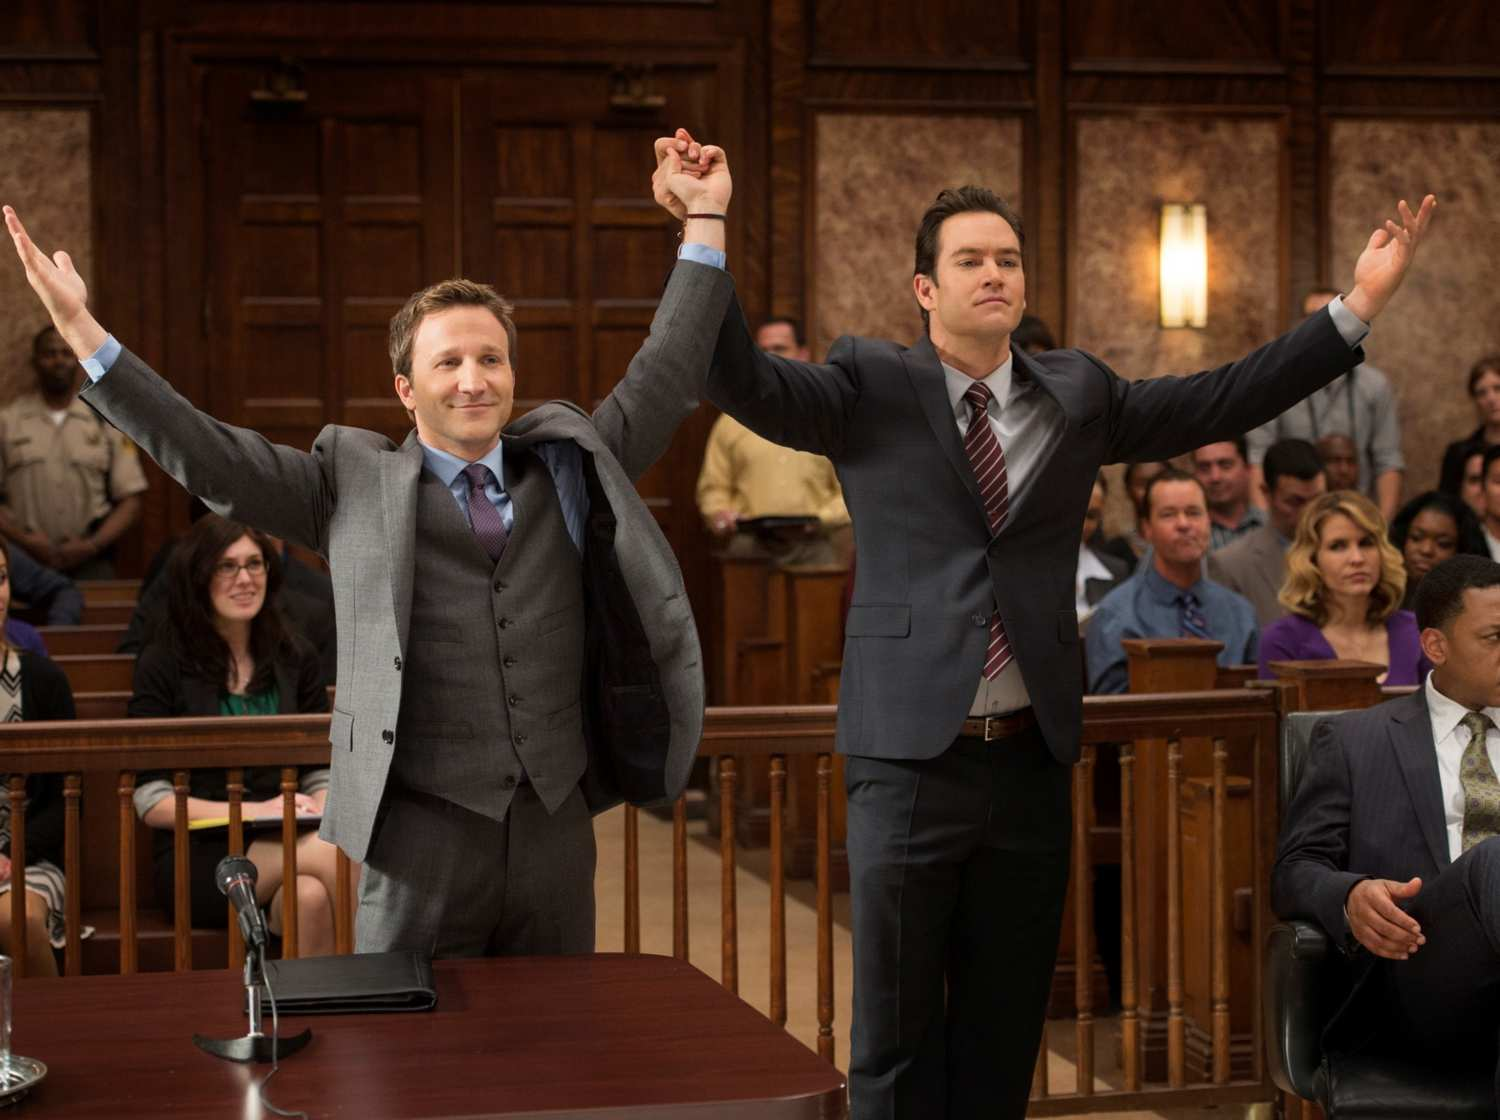 Franklin n Bash like figure skaters in the courtroom